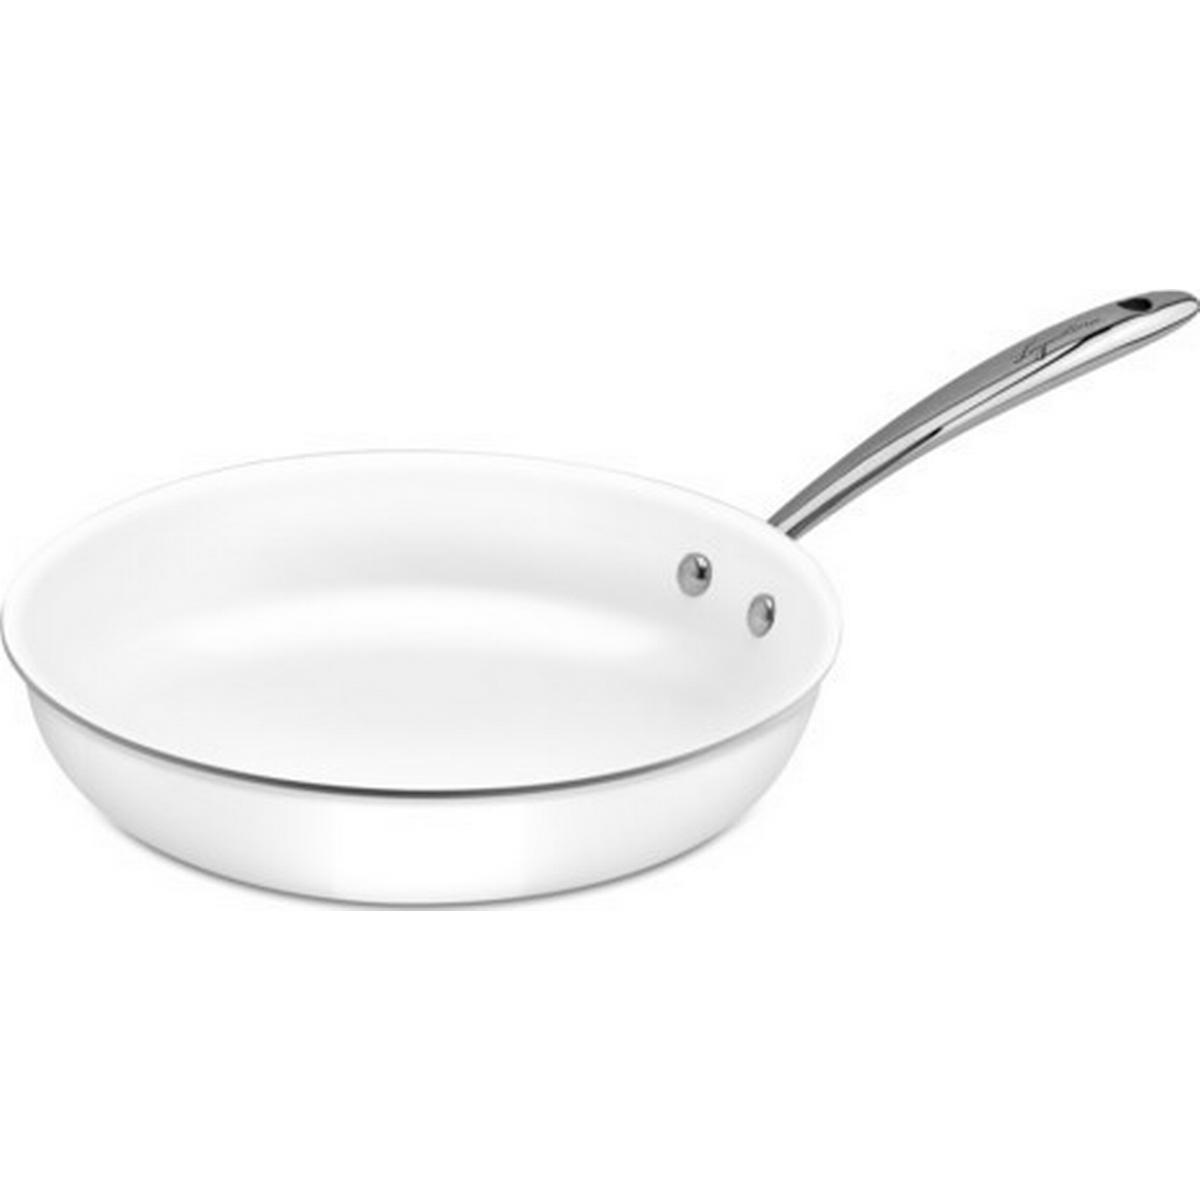 Compare best Lagostina Cookware prices on the market - PriceRunner